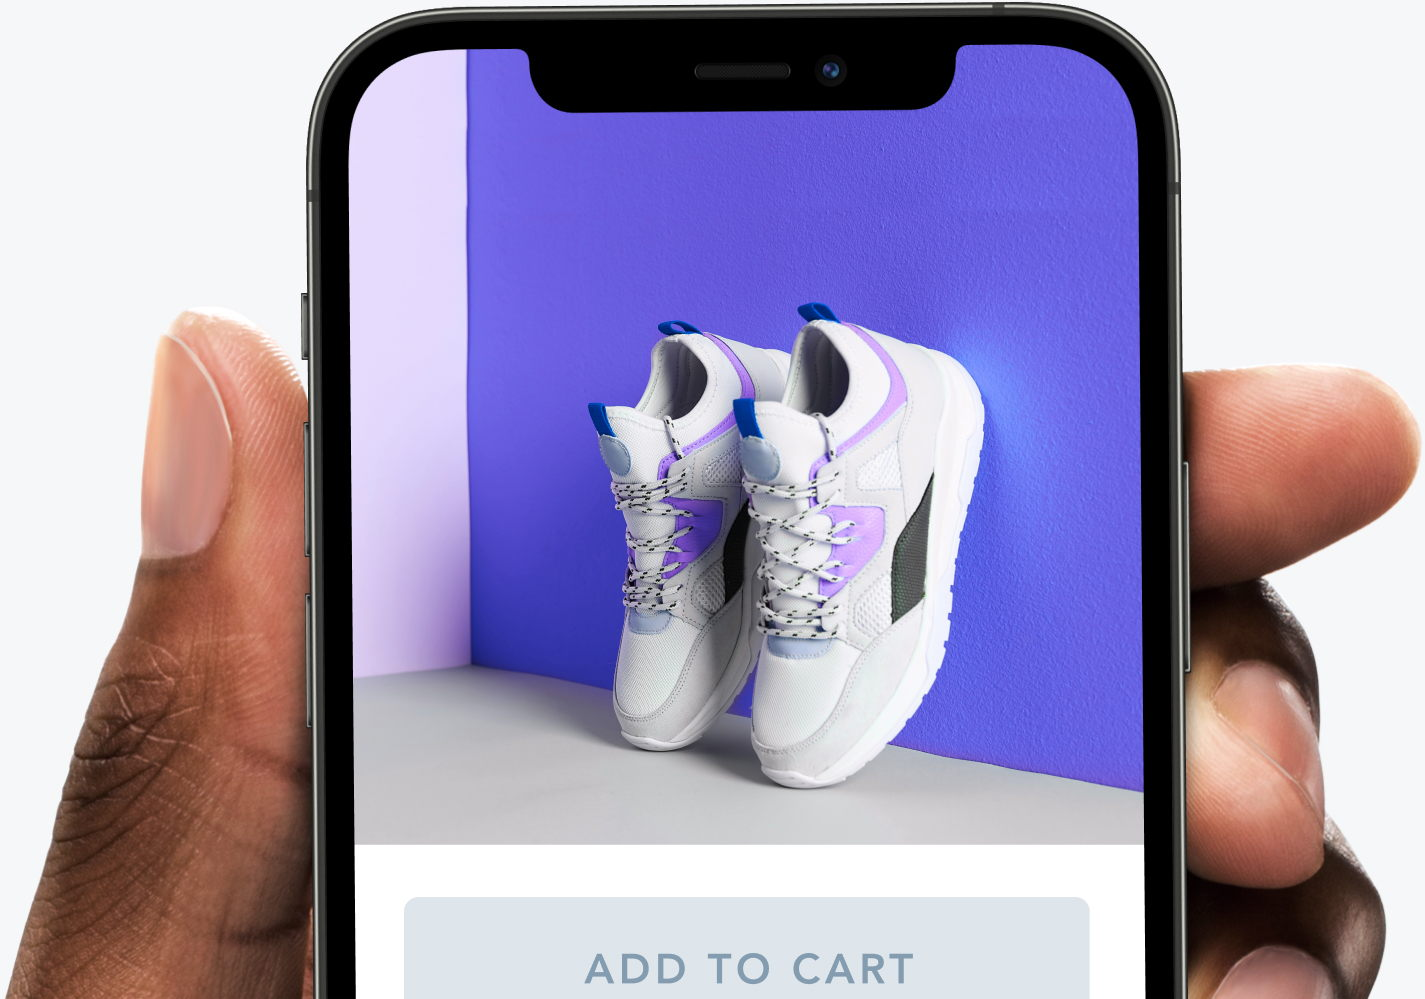 Fully optimized product image delivery to a smartphone